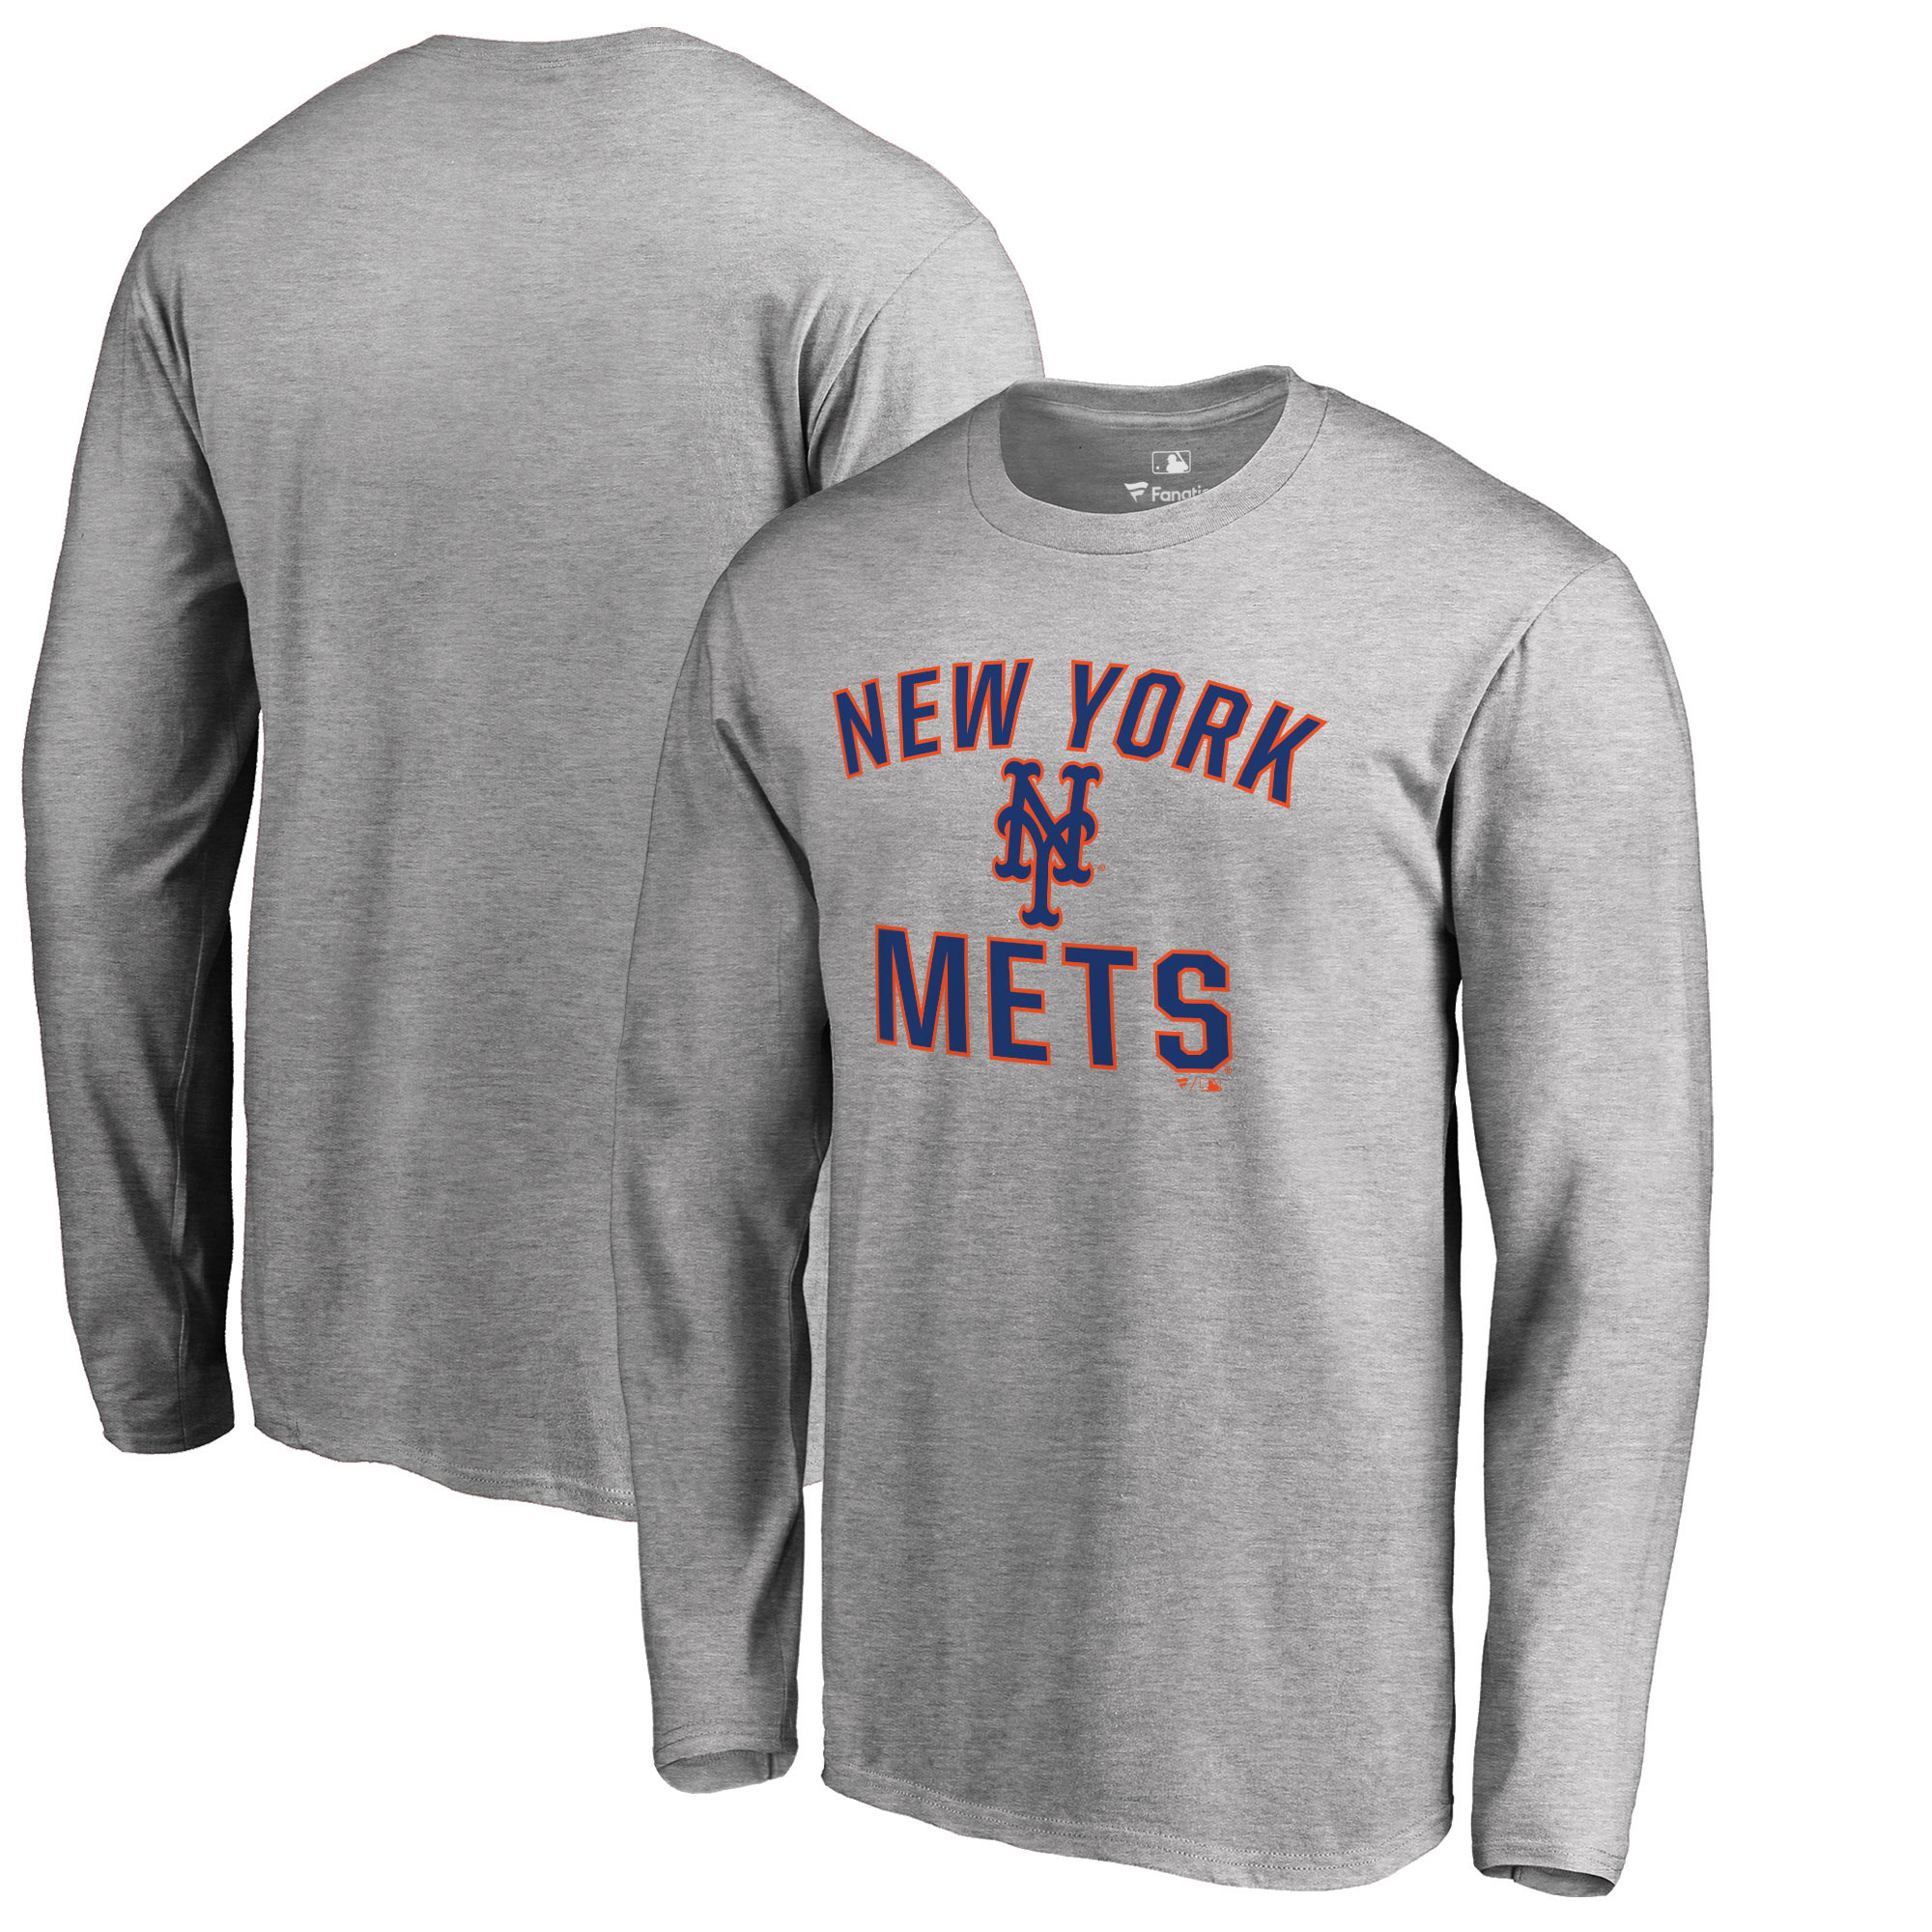 New York Mets Fanatics Branded Victory Arch Long Sleeve T-Shirt - Heathered Gray